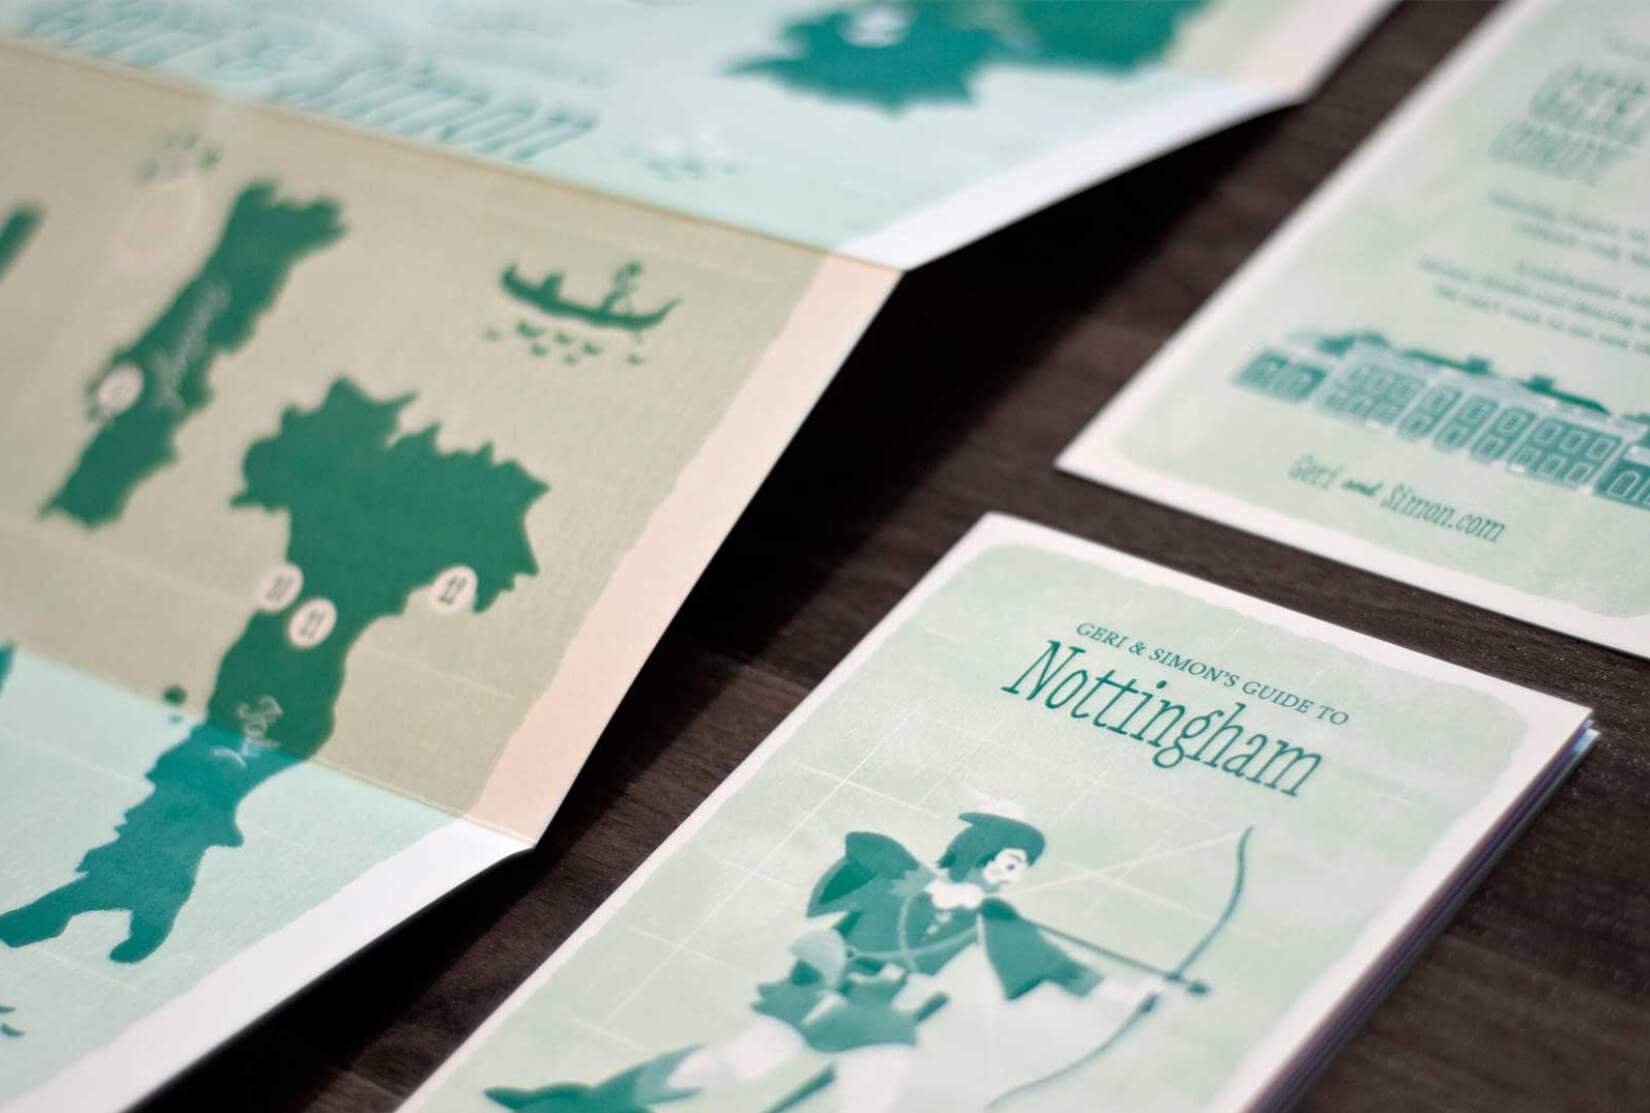 Detail of the printed invitation material